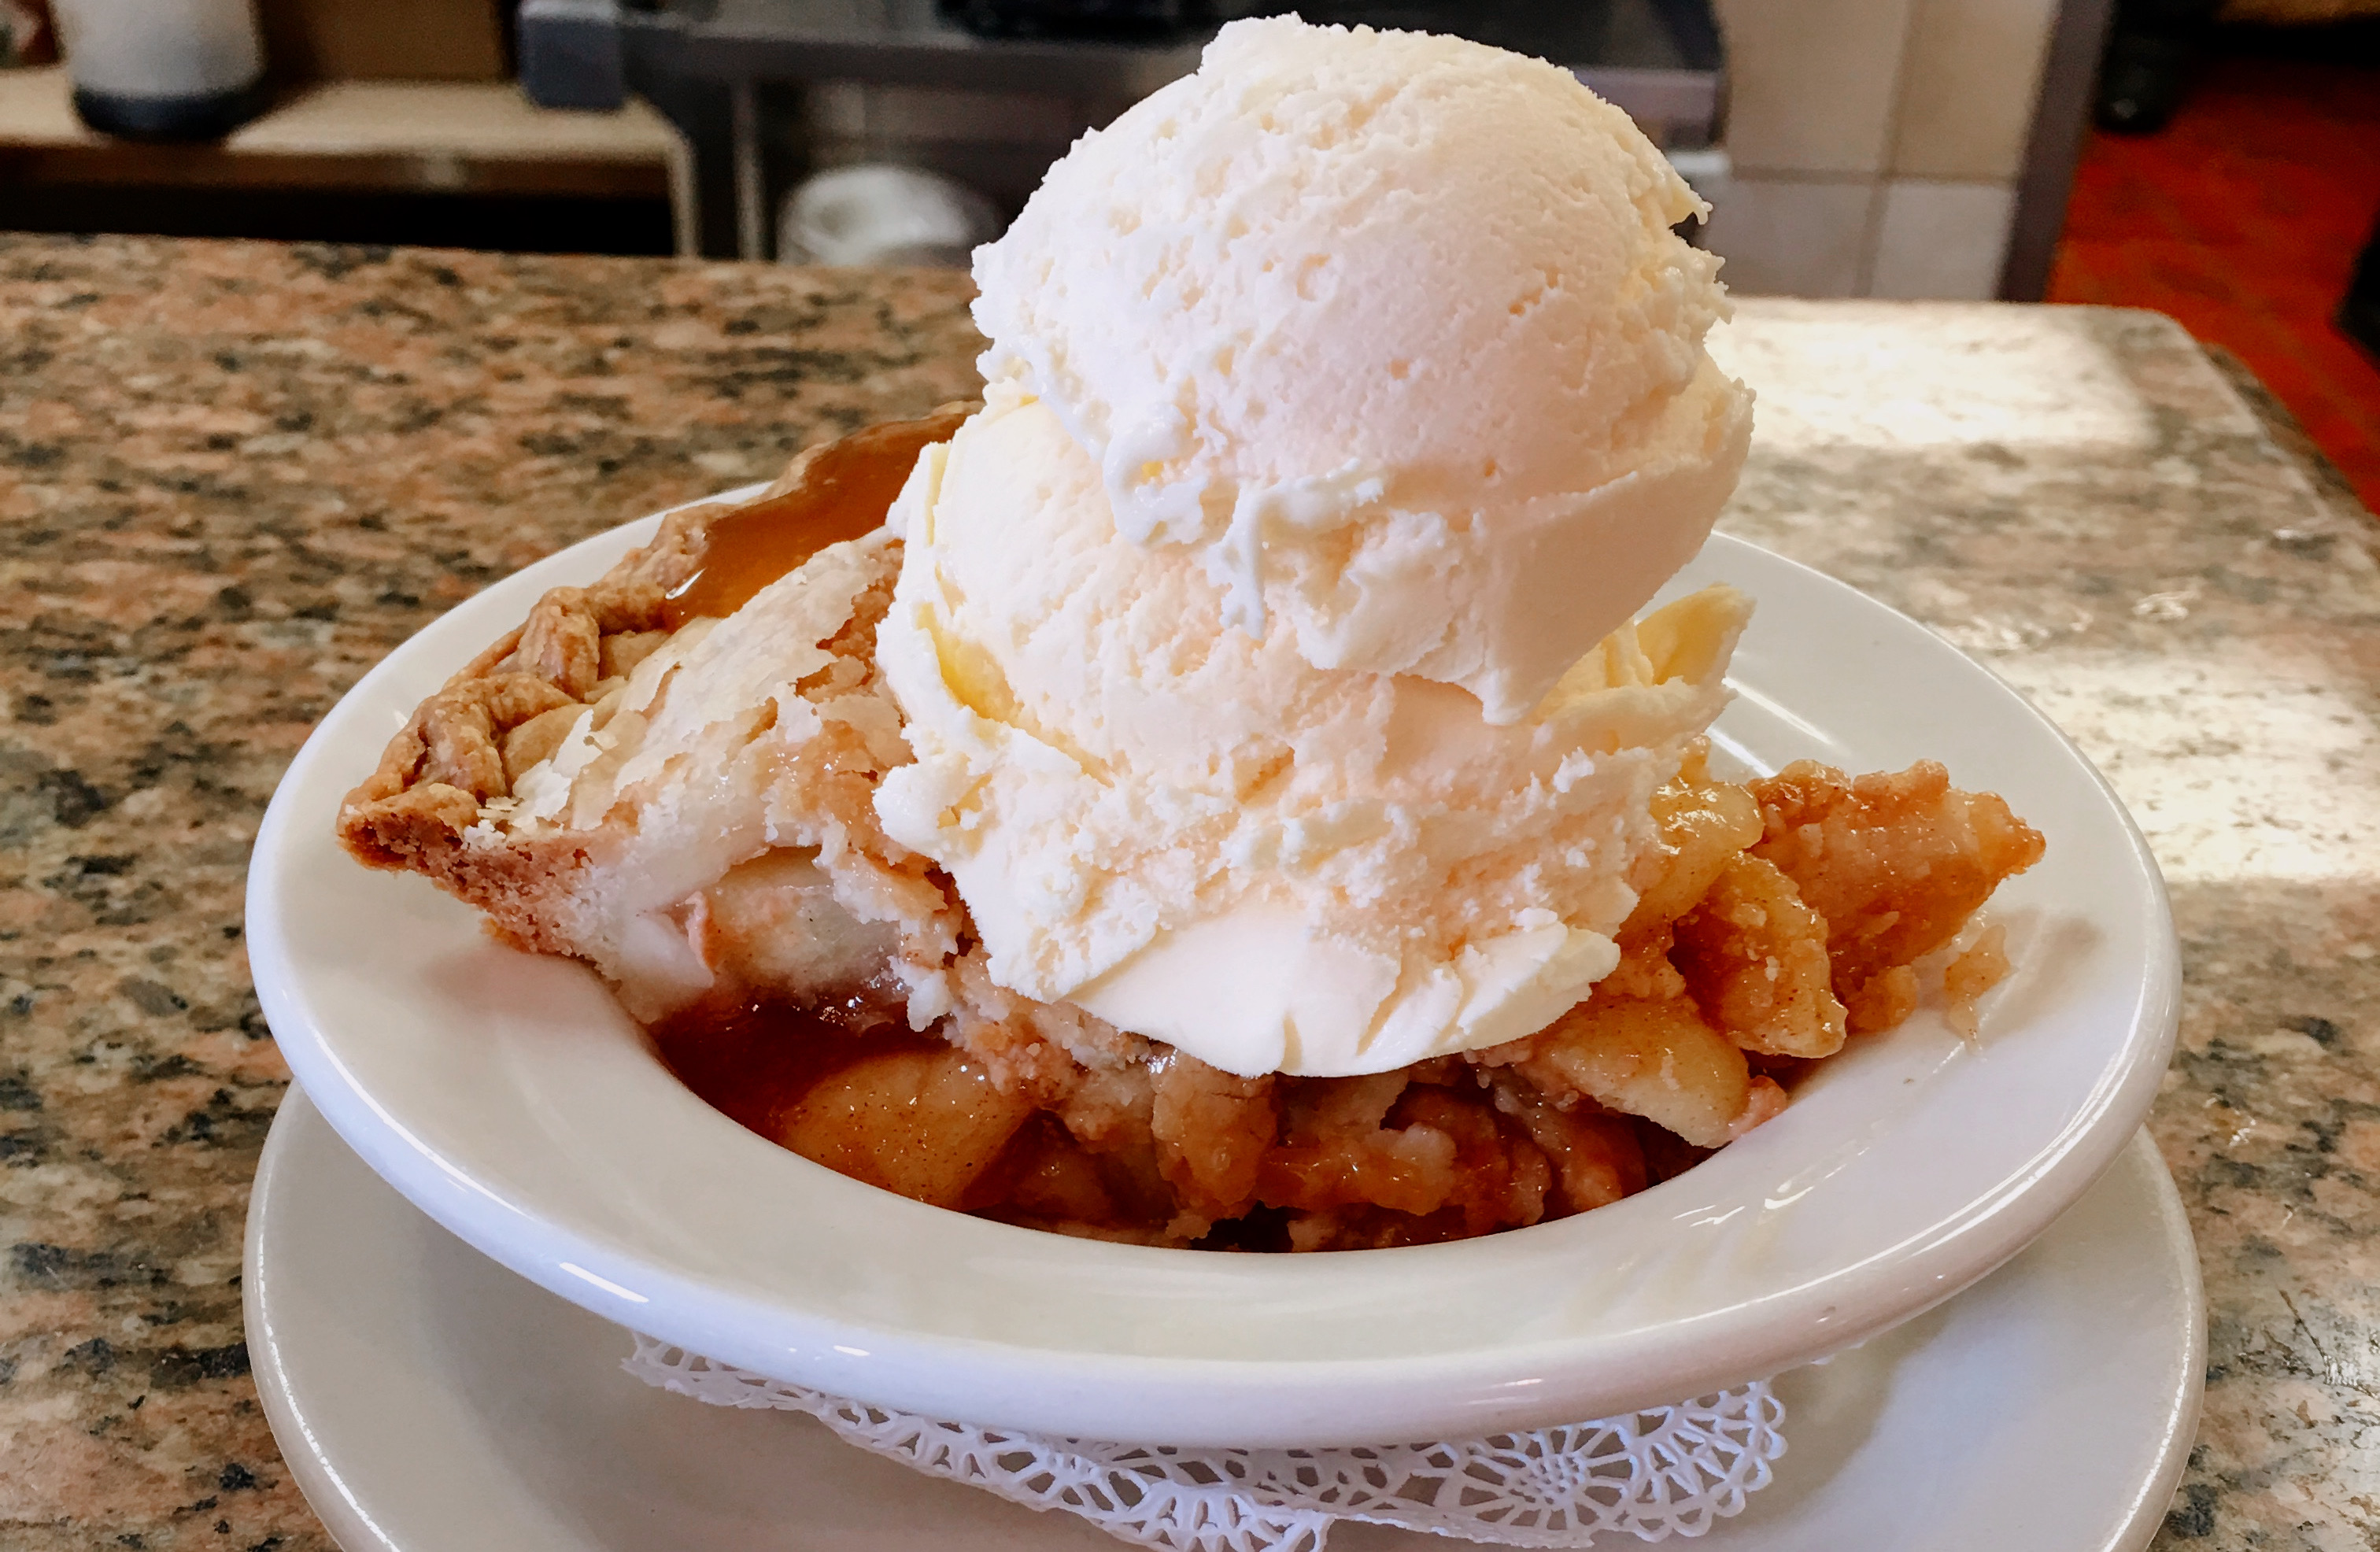 Warm Caramel Apple Pie